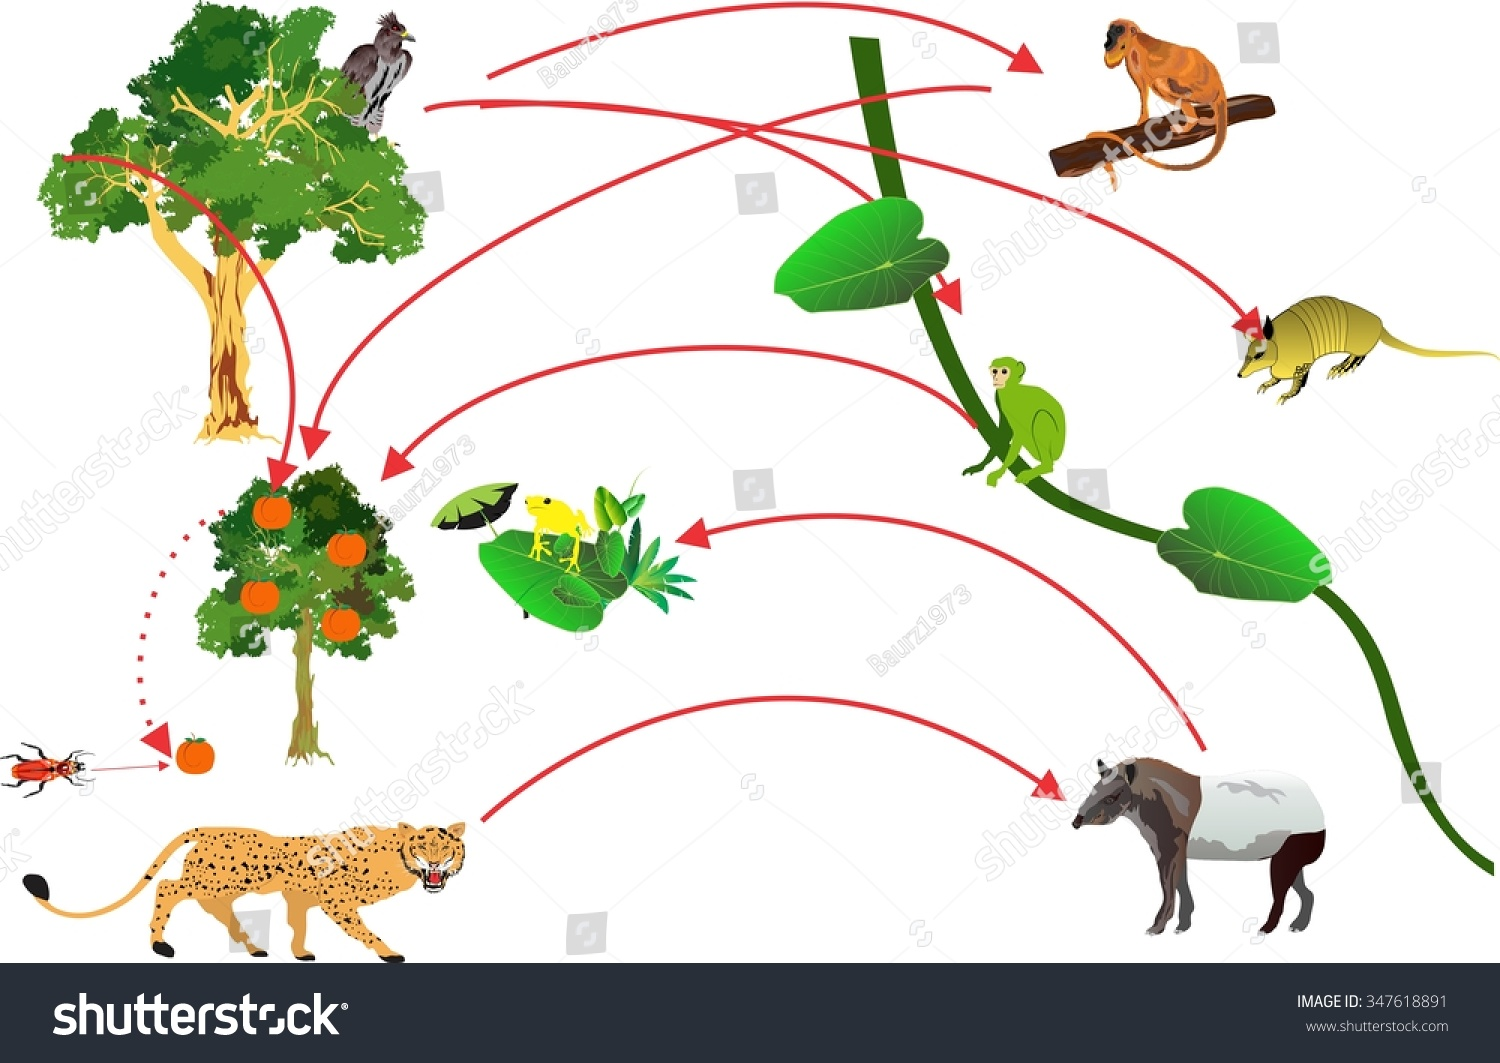 Amazon Rainforest Food Chain Life Crcle Stock Vector 347618891 ...